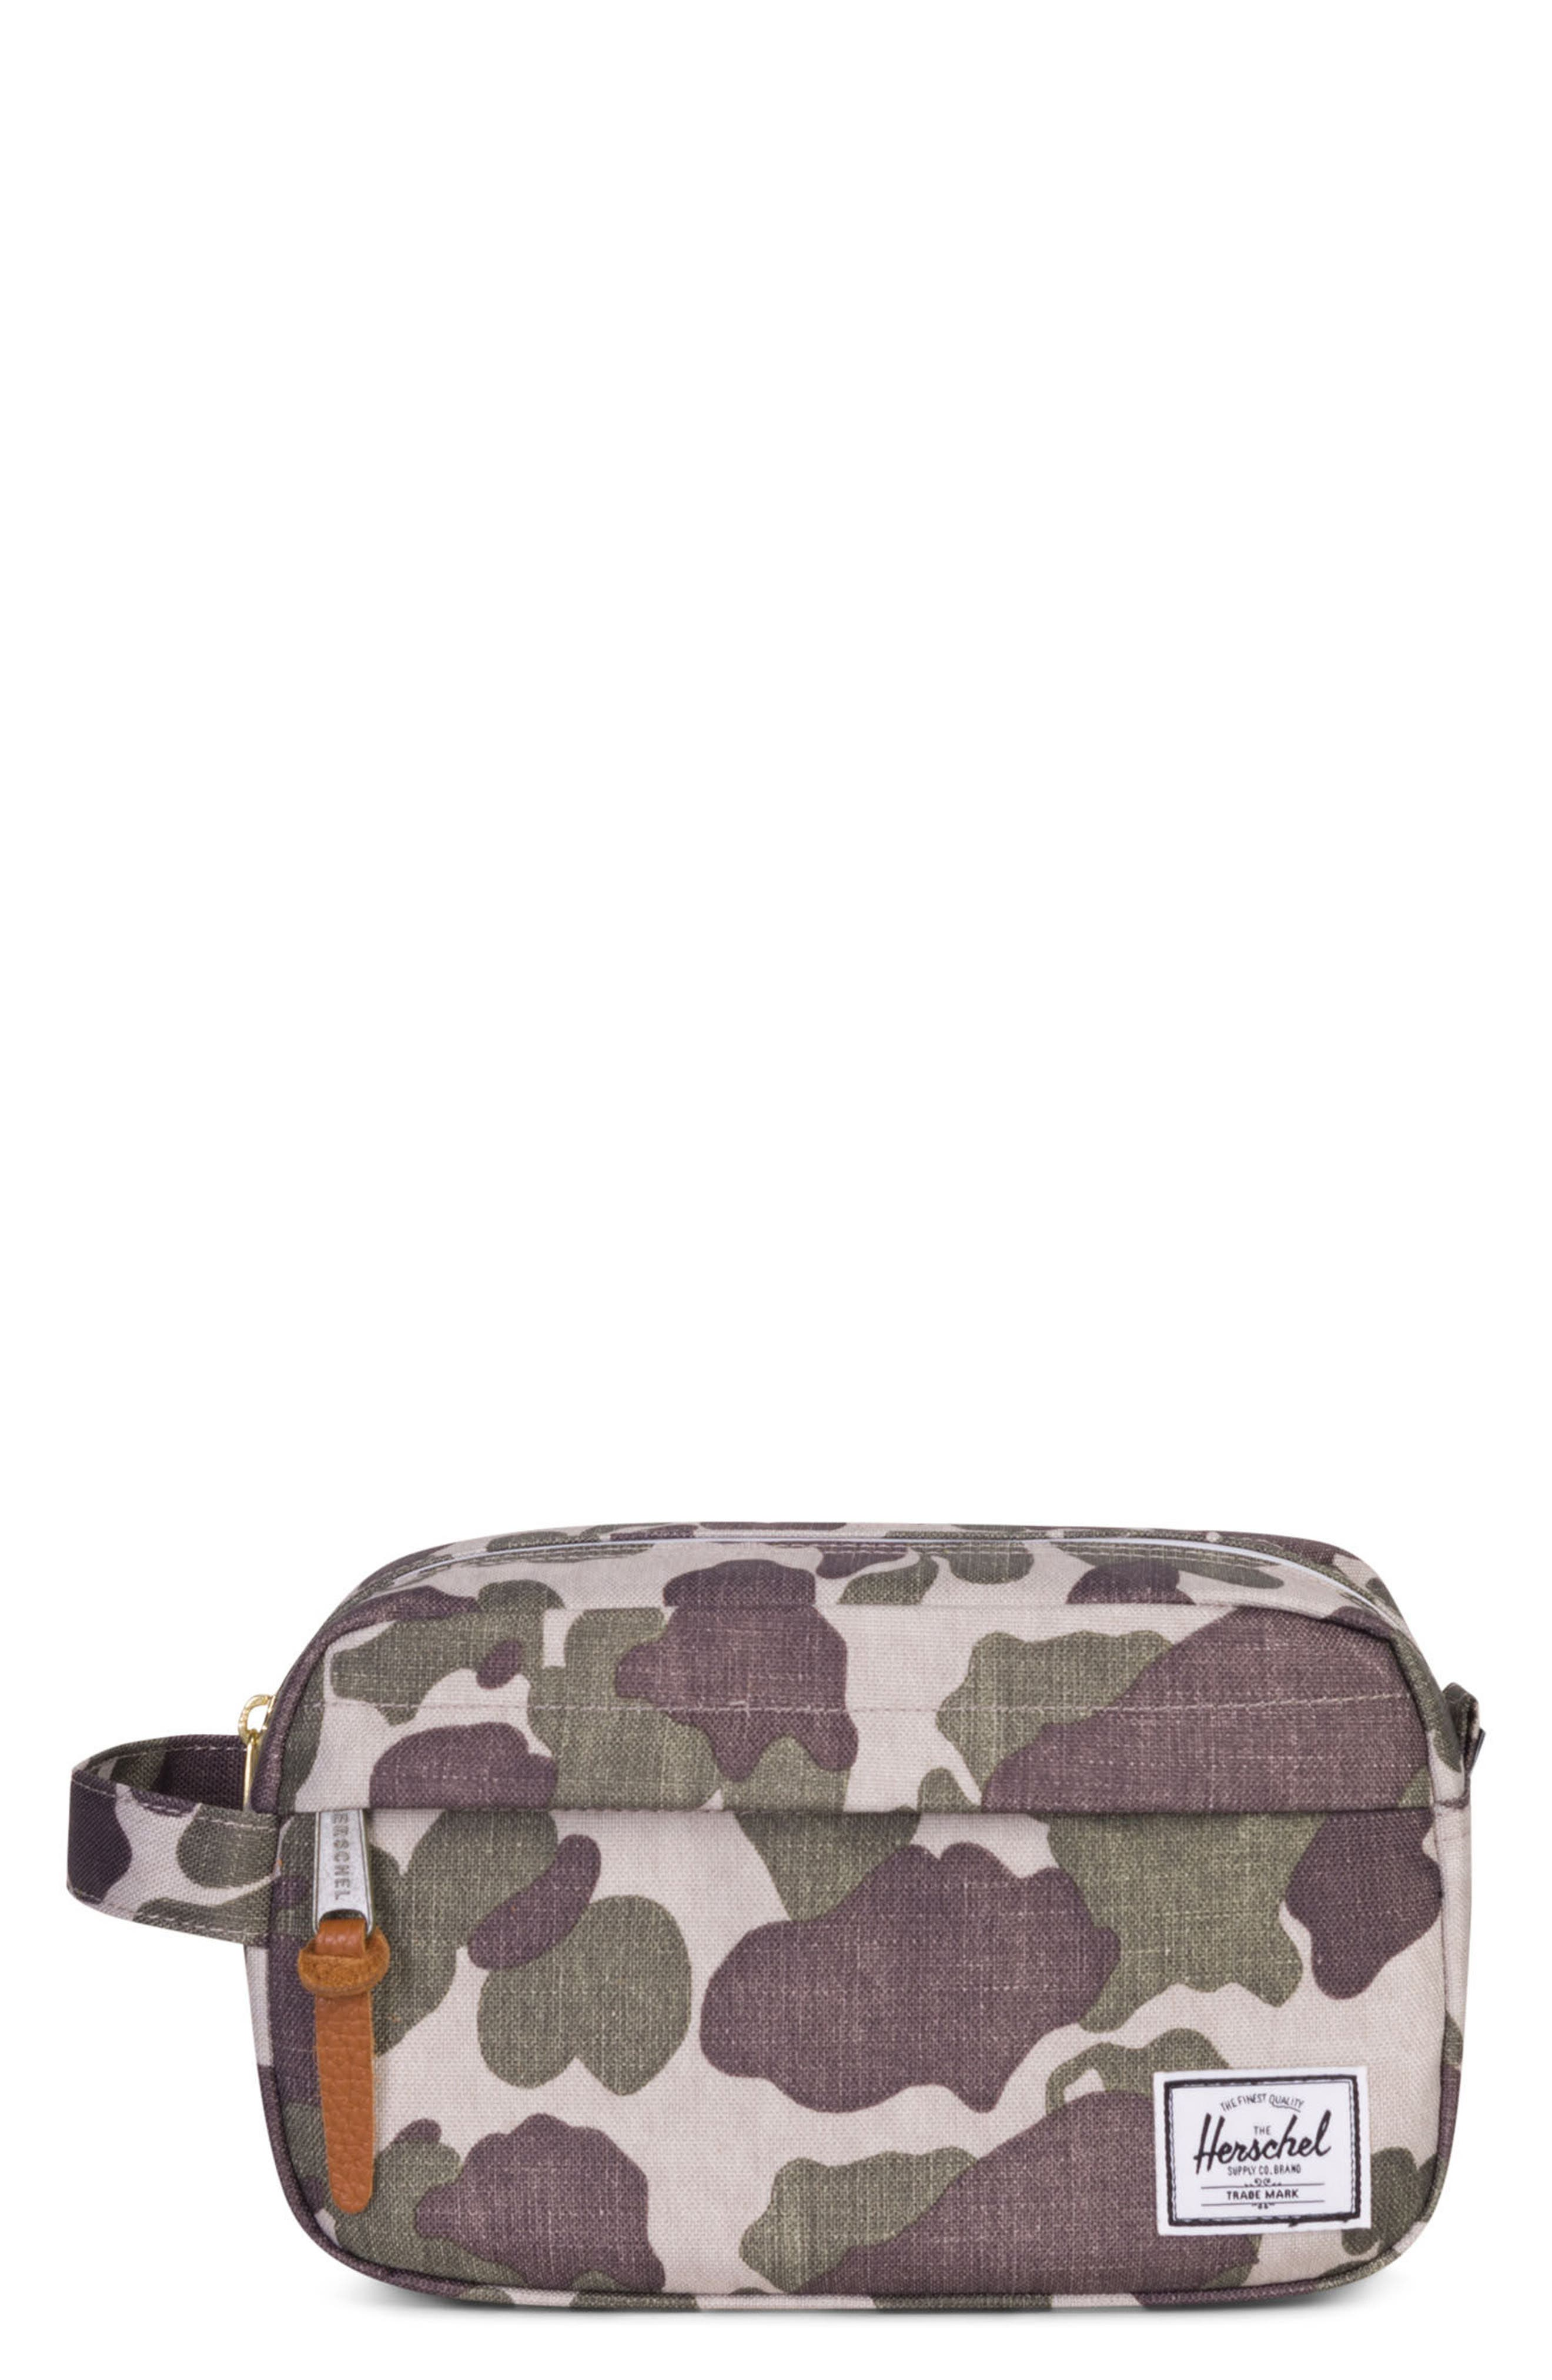 Carry-On Travel Kit,                             Main thumbnail 1, color,                             Frog Camo